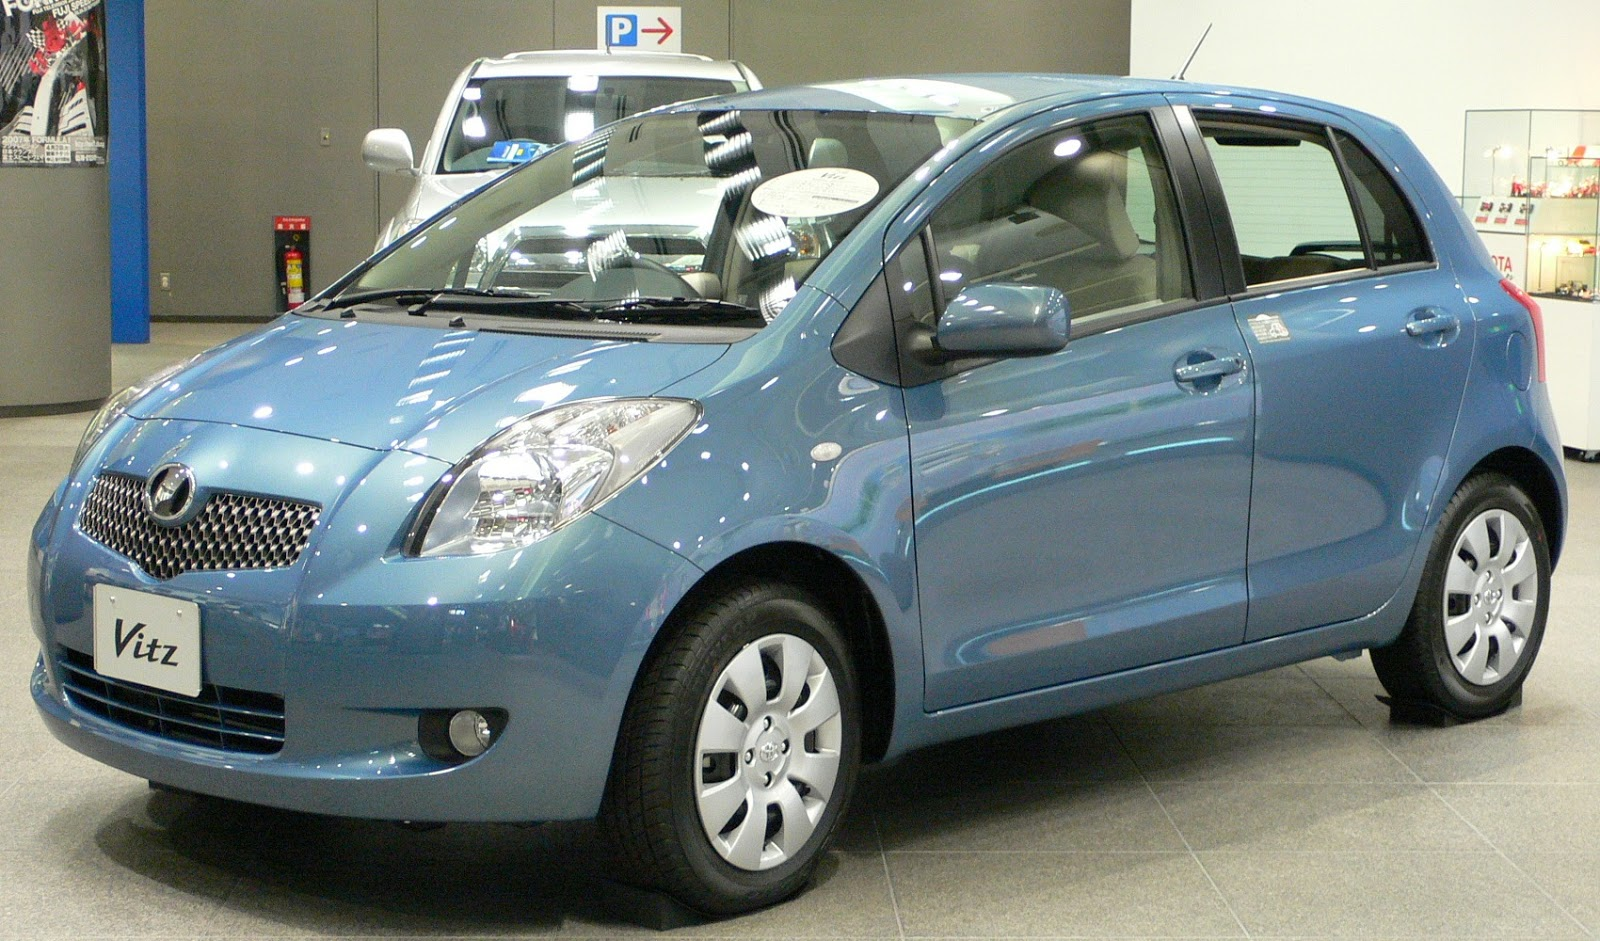 Toyota Vitz Car Models